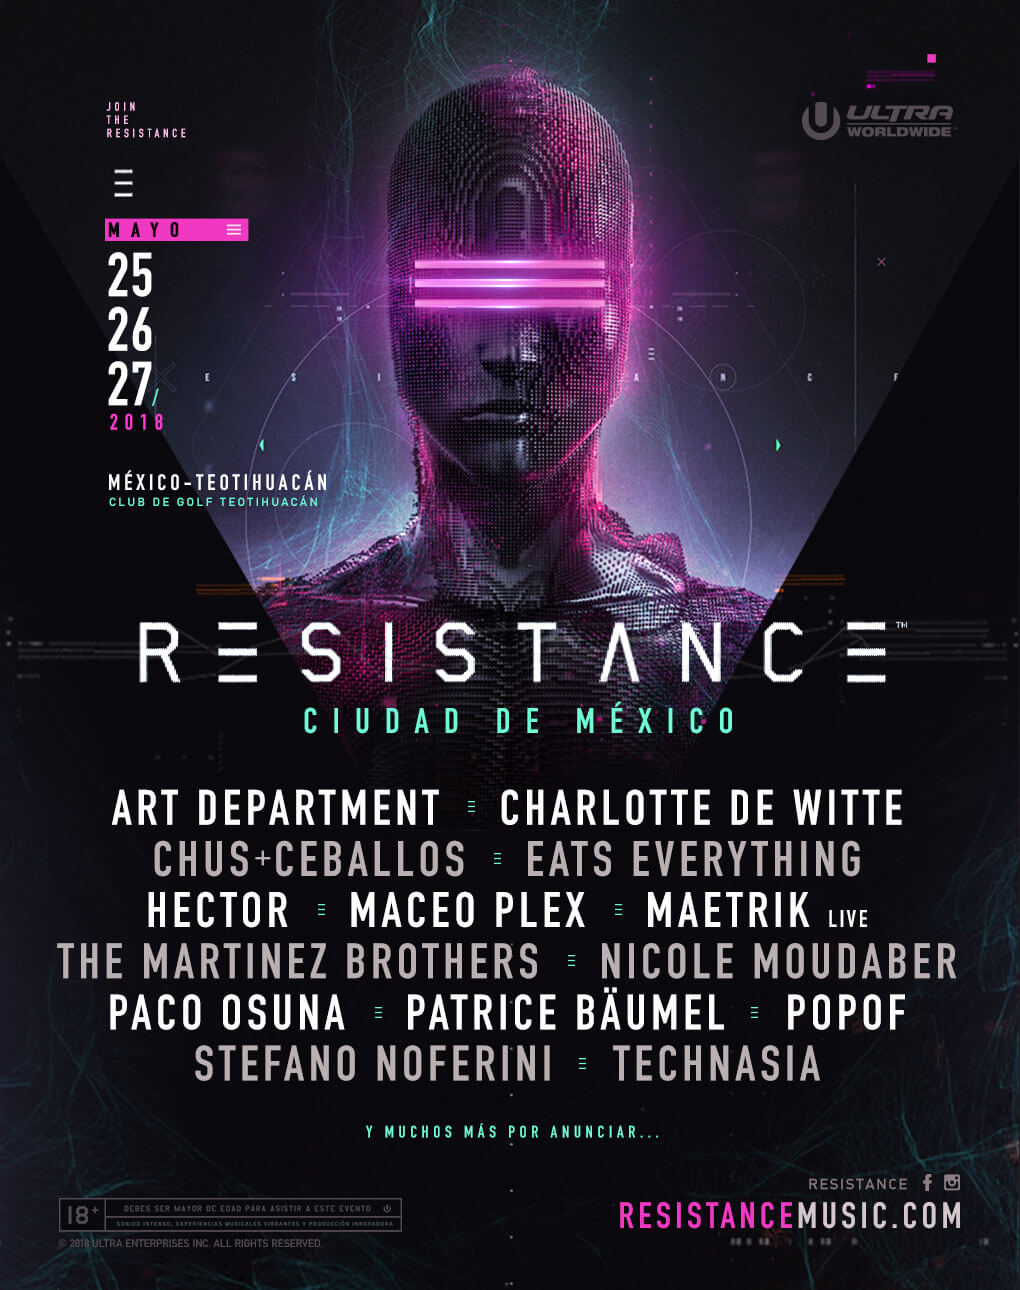 ULTRA Worldwide Announces RESISTANCE Mexico City Lineup